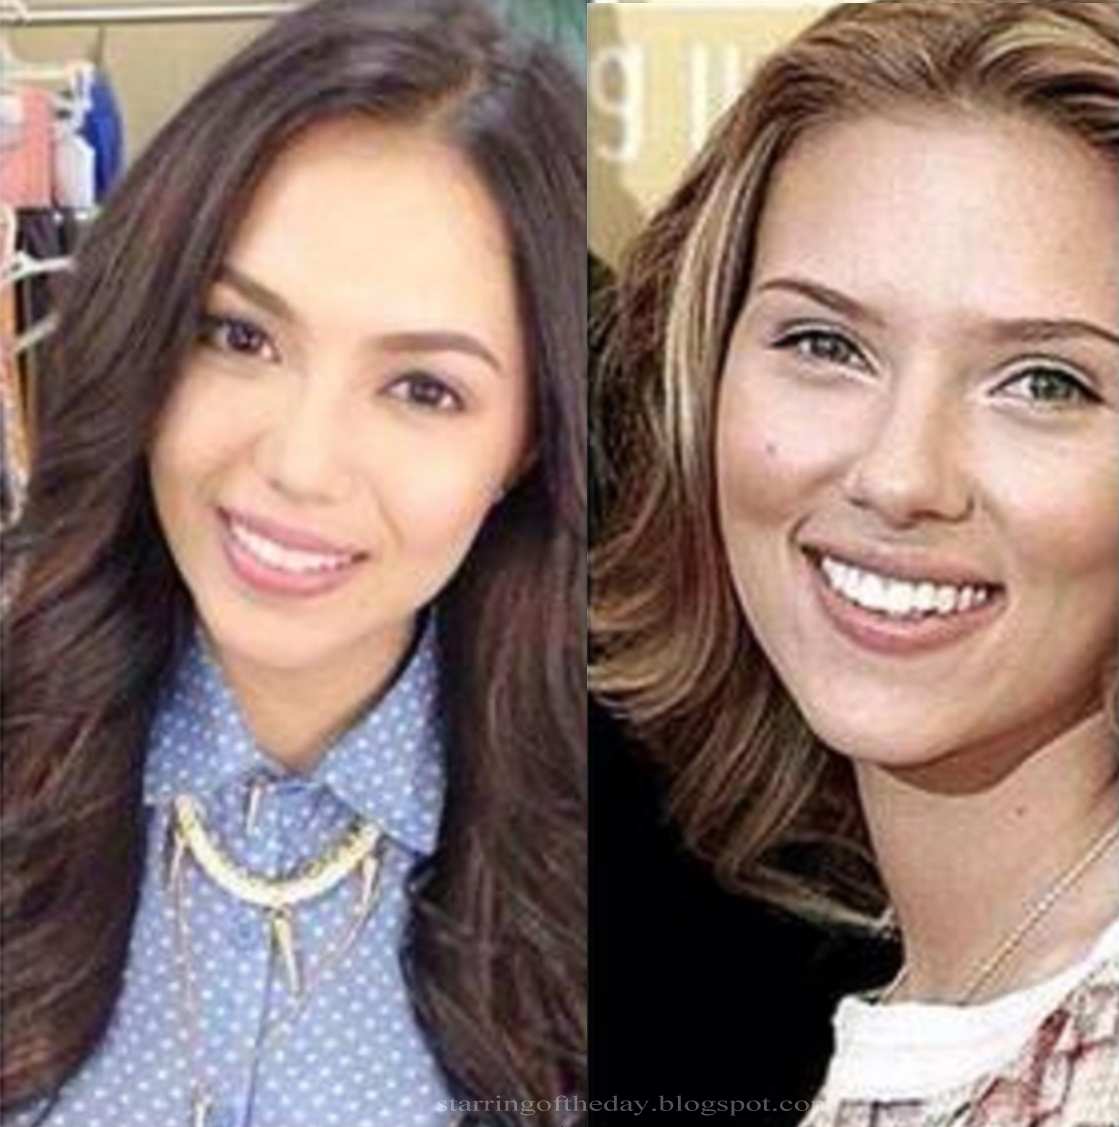 LOOK: 10 Pinoy Celebs And Their Foreign Look-Alikes